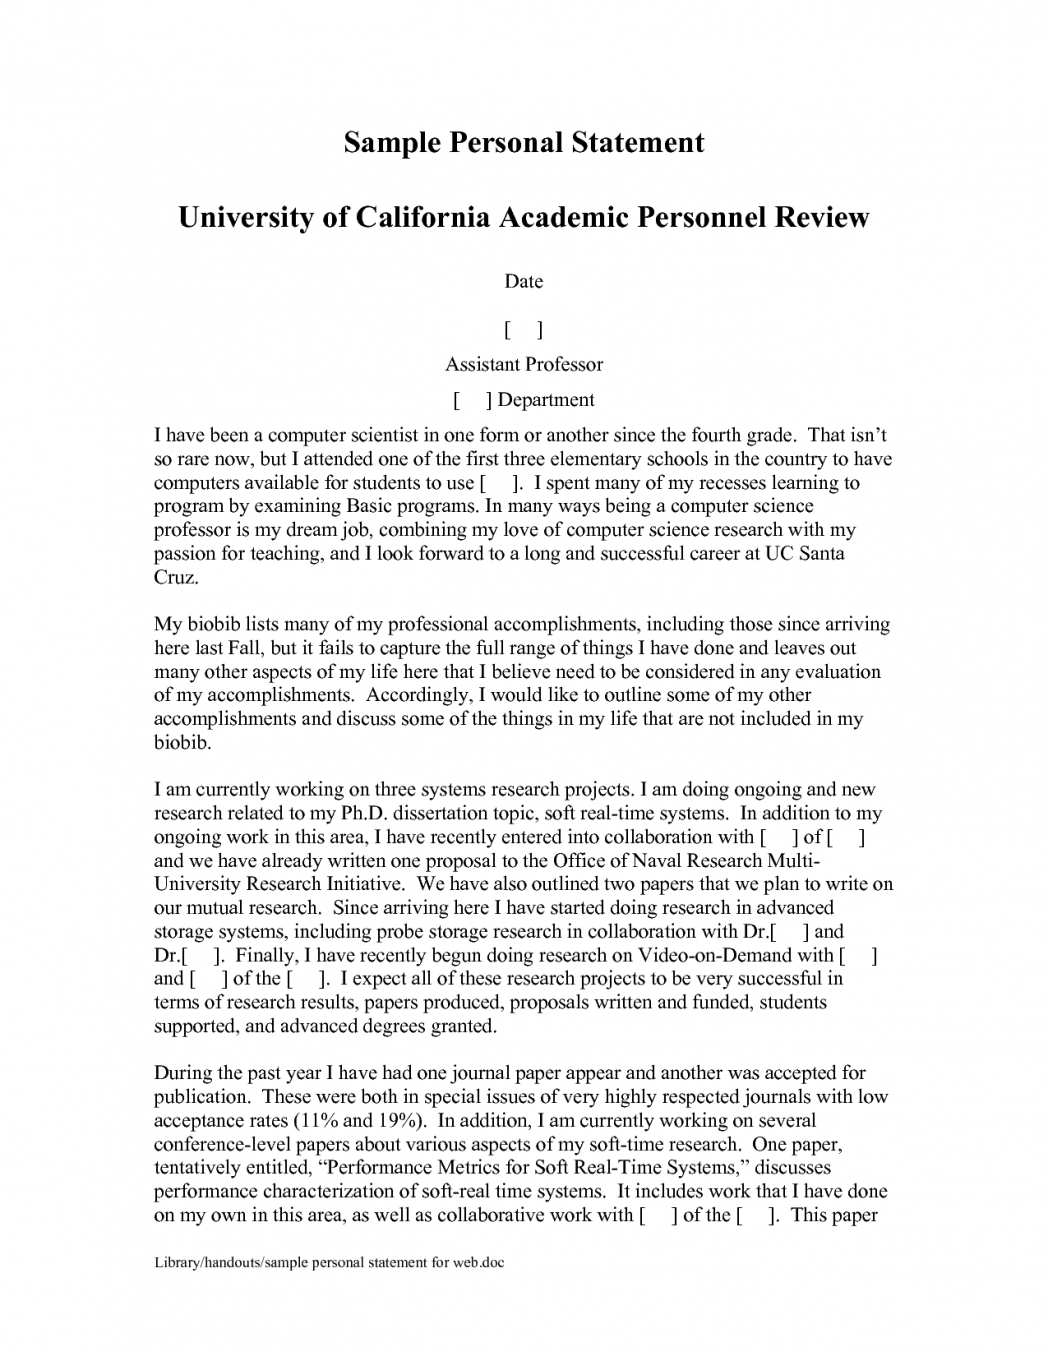 006 Essay Example Profile Personal Examples Personality Uc College Prompt Of Statements For Graduate School Template 0mc Prompts Davis Guy Berkeley Wonderful Full